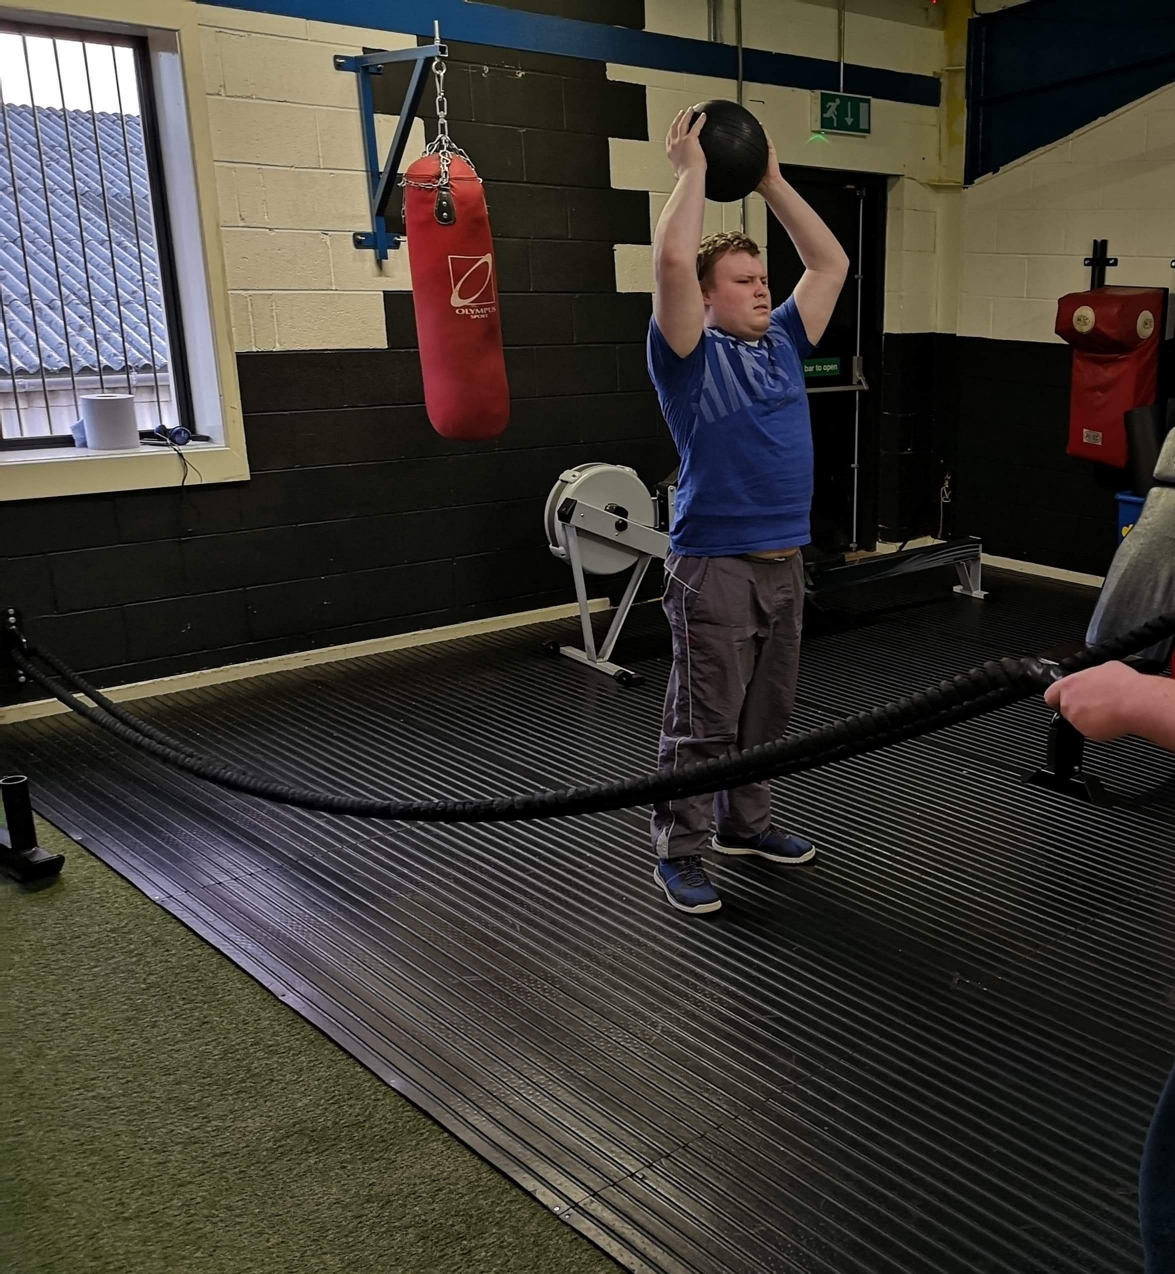 Young man lifting weights in a gym